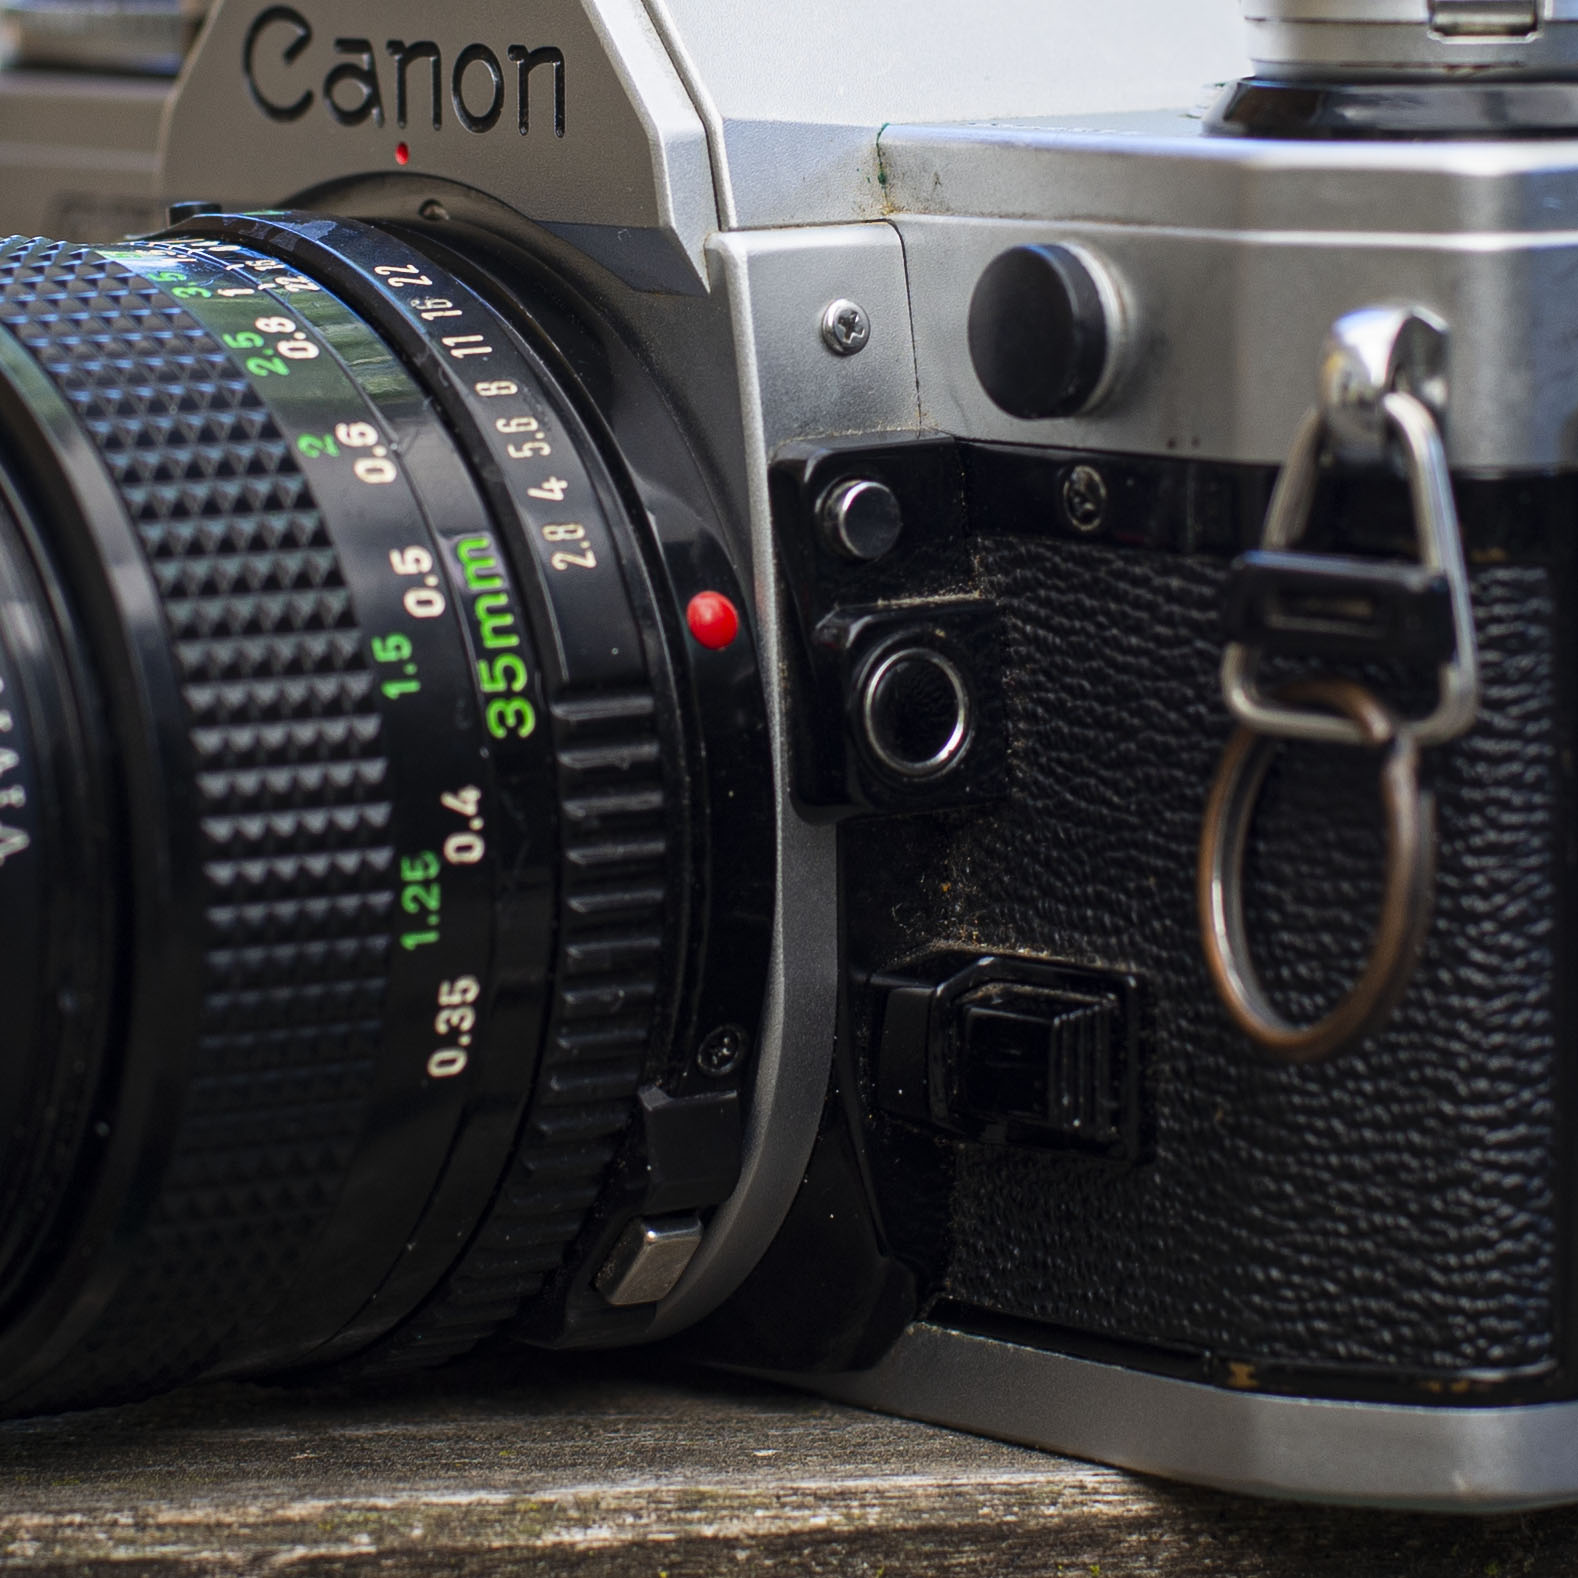 lens and metering controls